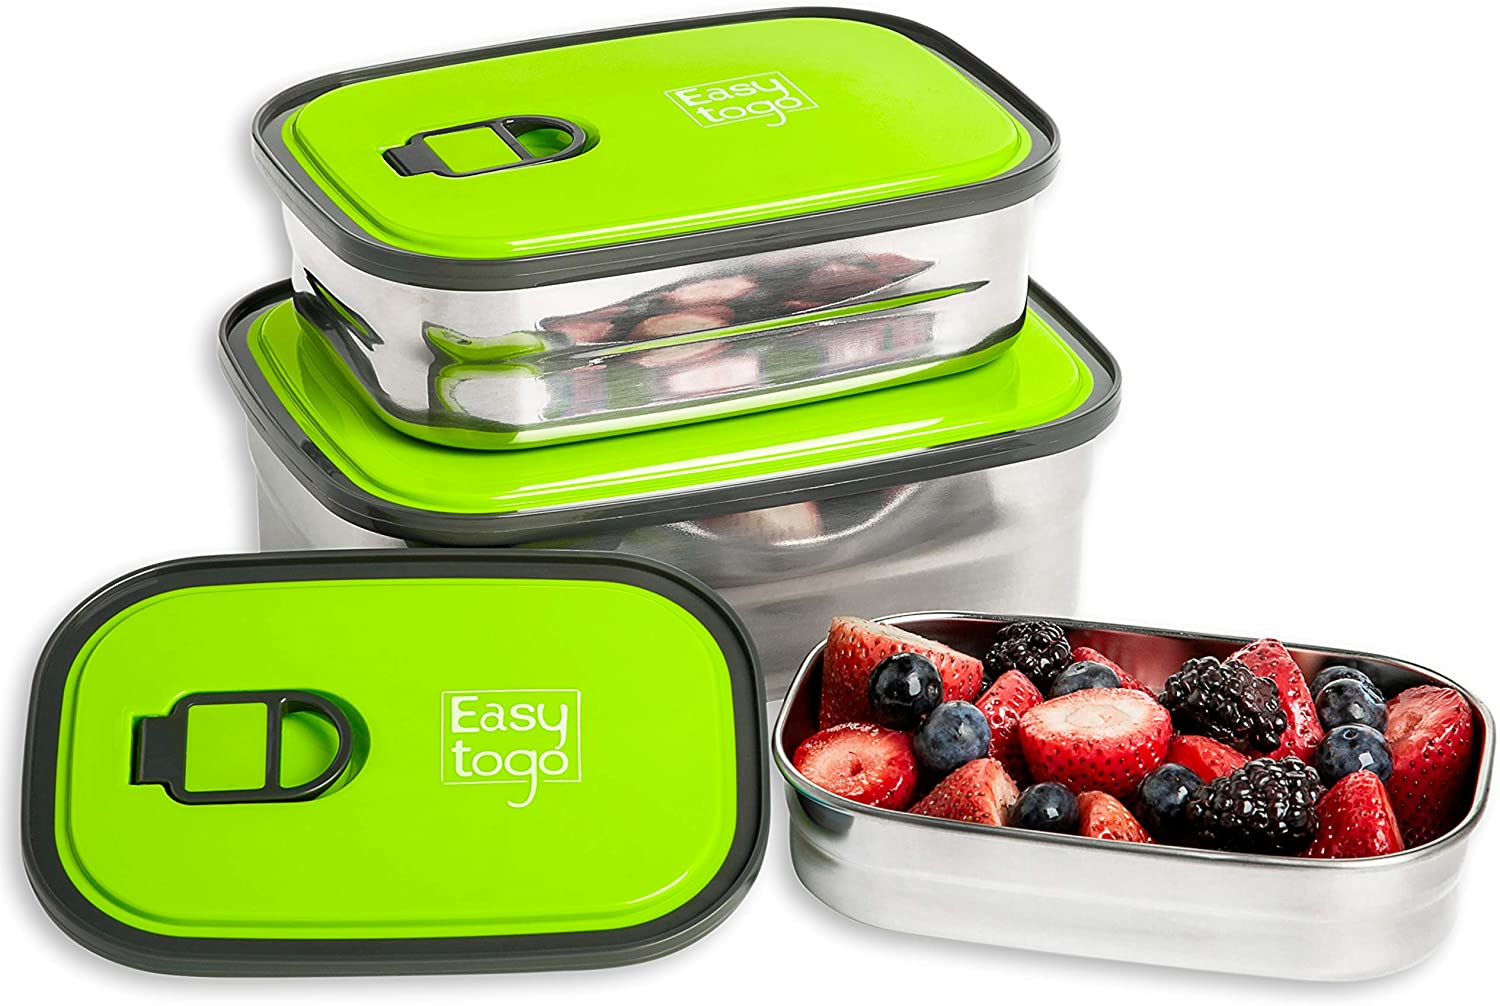 Leak Proof Bento Lunch Box Set | Reusable 3 Pack | Nesting Stainless Steel Metal Storage Food Containers for Men Women or Kids ?BPA Free? Work / School LunchesStainless Durable Sandwich Box (Green)